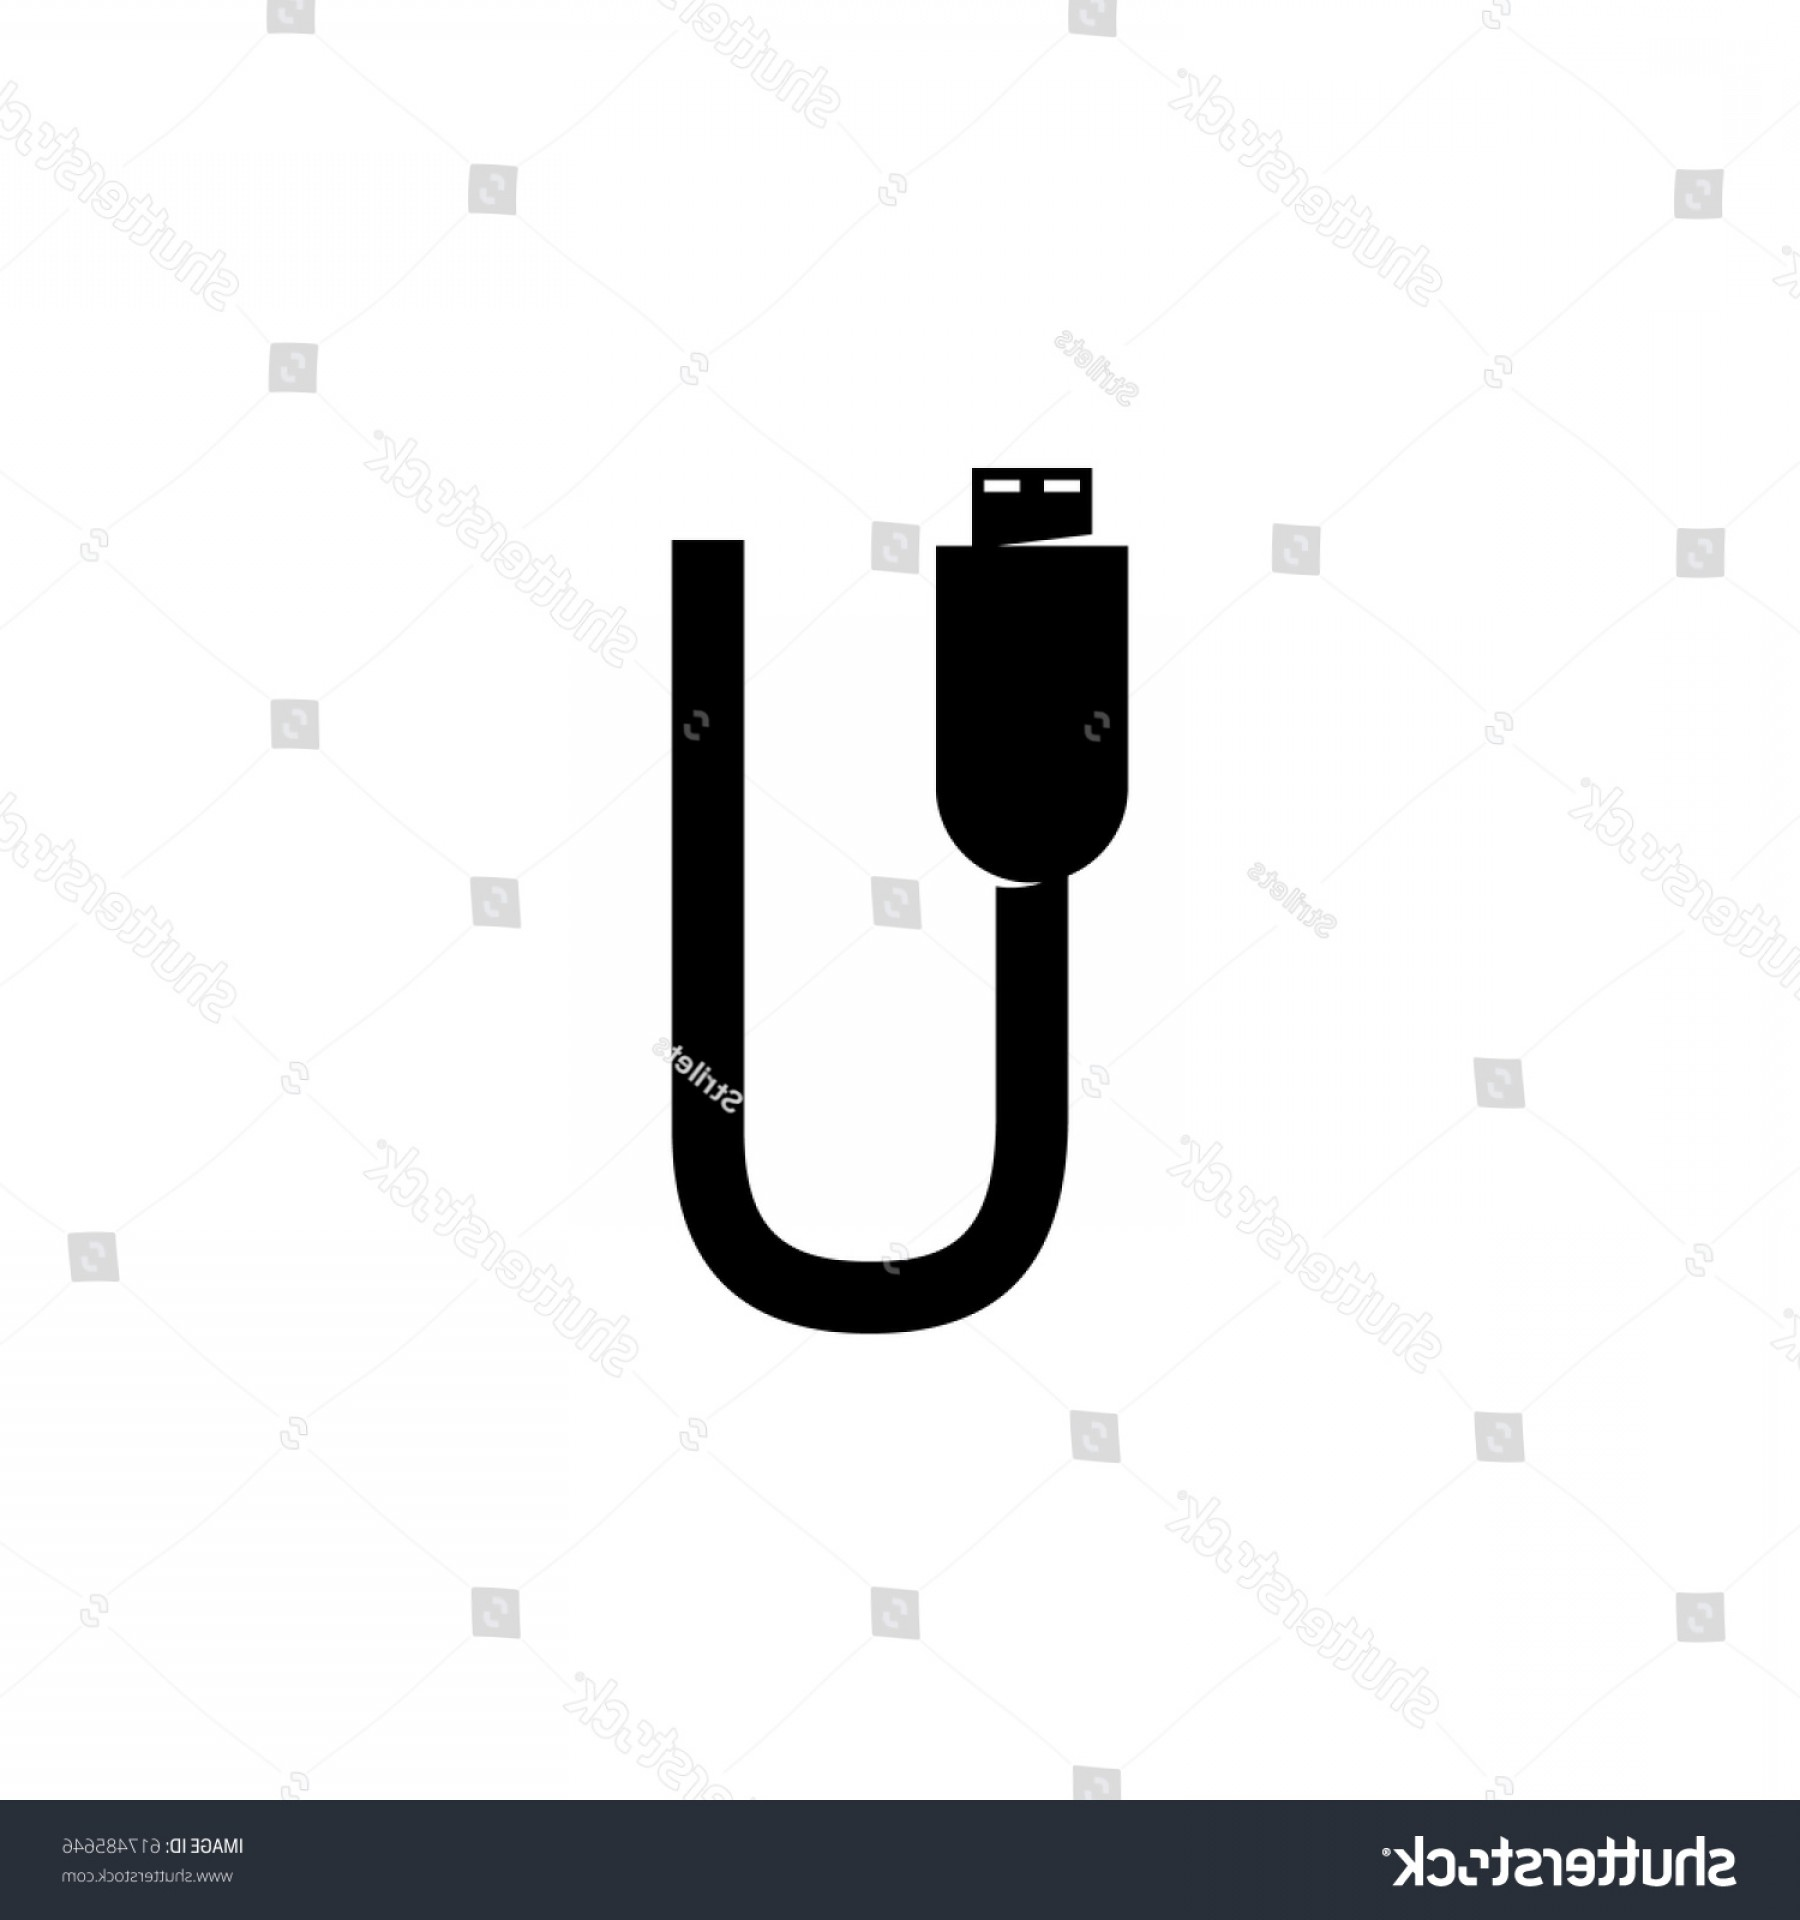 USB Icon Vector: Usb Cable Vector Logo Illustration Isolated